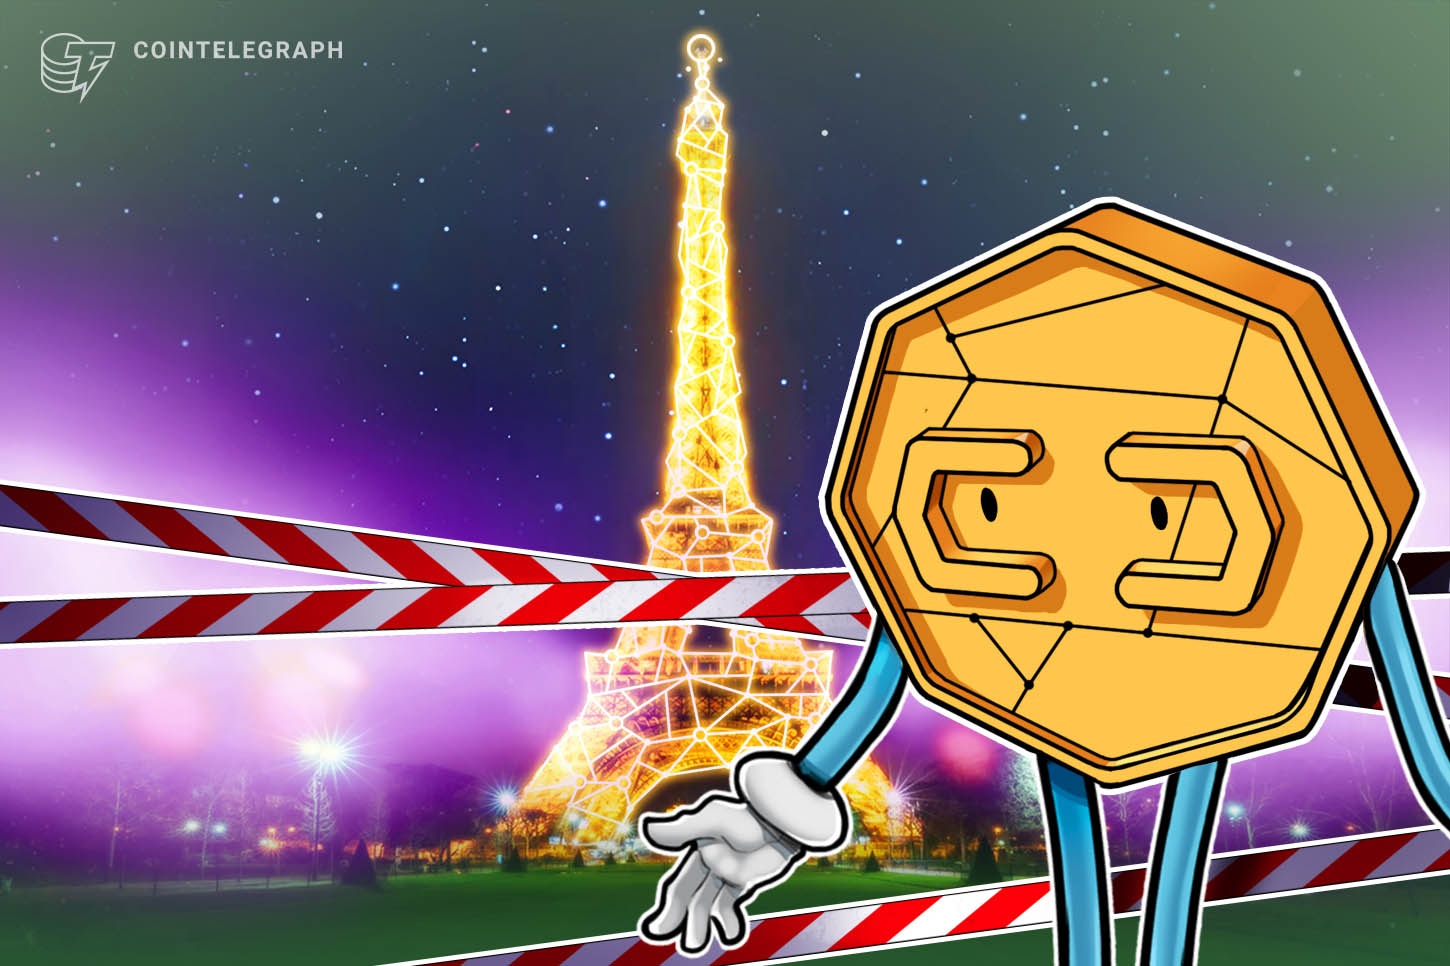 French Finance Minister throws shade at crypto, praises blockchain